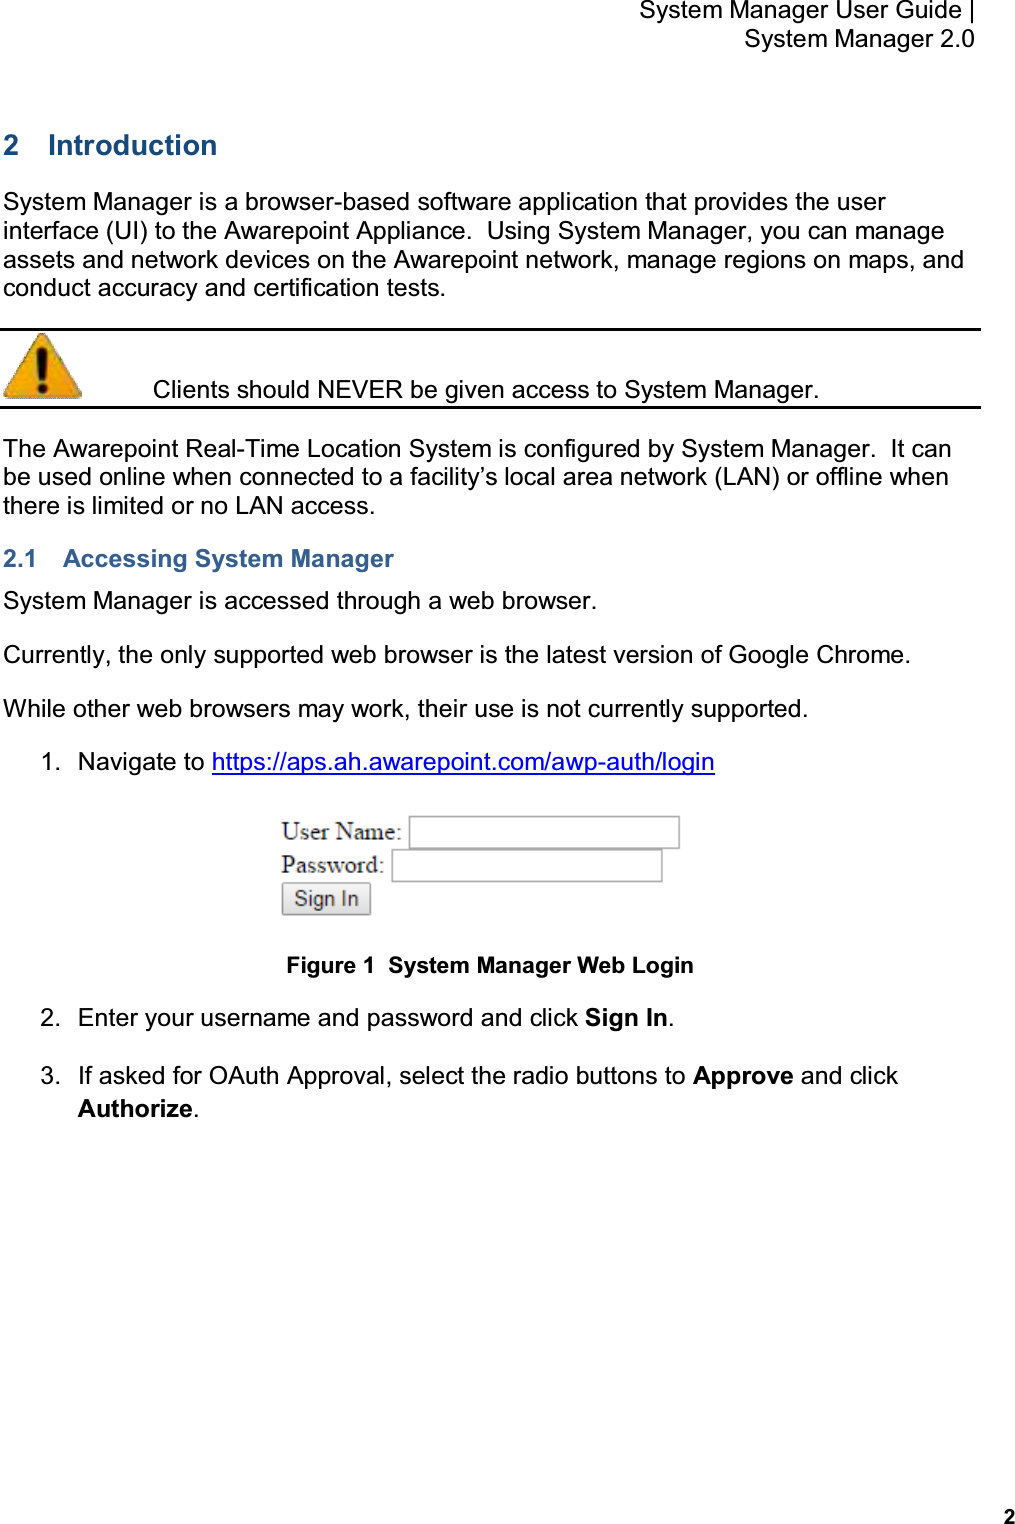 2 System Manager User Guide    System Manager 2.0 2  Introduction System Manager is a browser-based software application that provides the user interface (UI) to the Awarepoint Appliance.  Using System Manager, you can manage assets and network devices on the Awarepoint network, manage regions on maps, and conduct accuracy and certification tests.   Clients should NEVER be given access to System Manager. The Awarepoint Real-Time Location System is configured by System Manager.  It can be used online when connected to a facility's local area network (LAN) or offline when there is limited or no LAN access. 2.1  Accessing System Manager System Manager is accessed through a web browser.   Currently, the only supported web browser is the latest version of Google Chrome. While other web browsers may work, their use is not currently supported. 1.  Navigate to https://aps.ah.awarepoint.com/awp-auth/login  Figure 1  System Manager Web Login 2.  Enter your username and password and click Sign In. 3.  If asked for OAuth Approval, select the radio buttons to Approve and click Authorize.